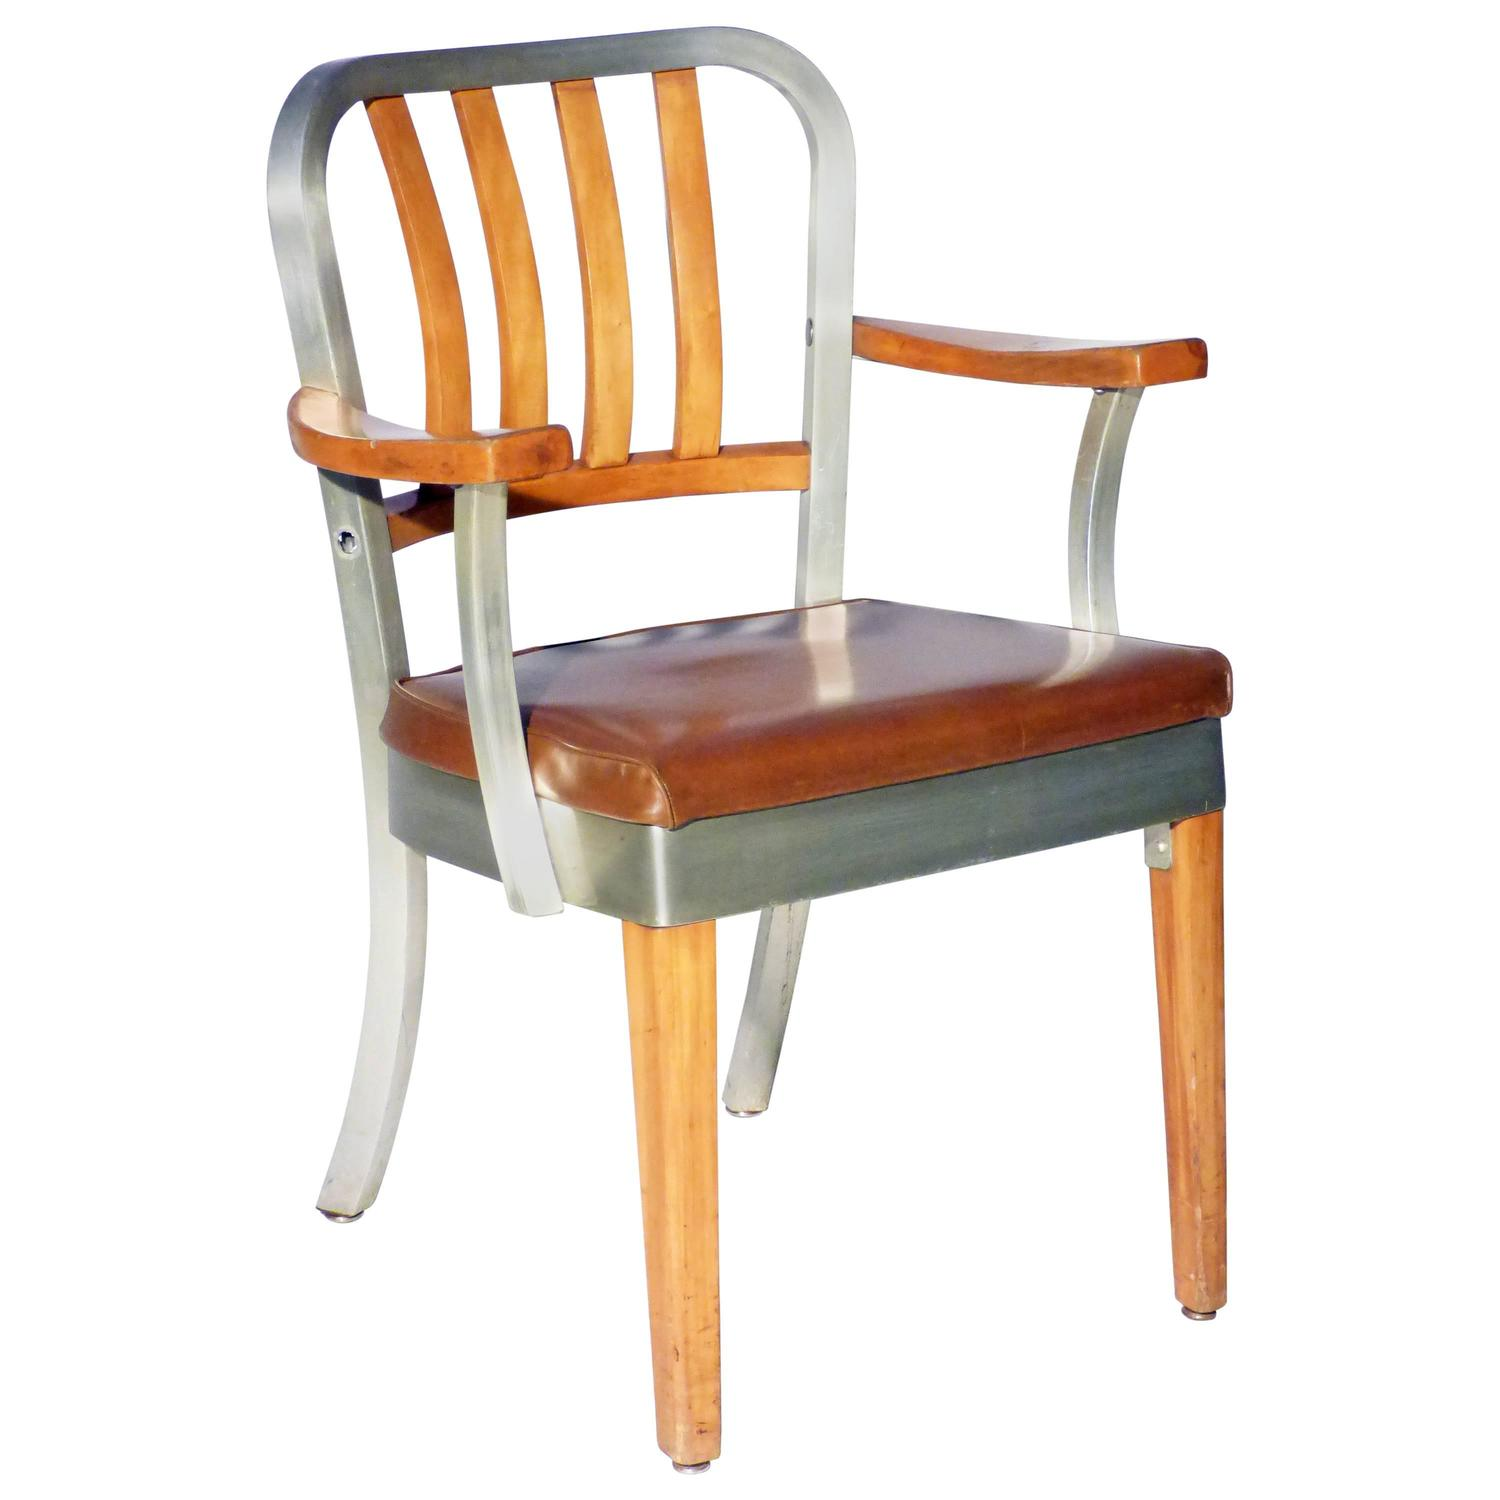 shaw walker chair the best office for back pain original us model 8312 armchair sale